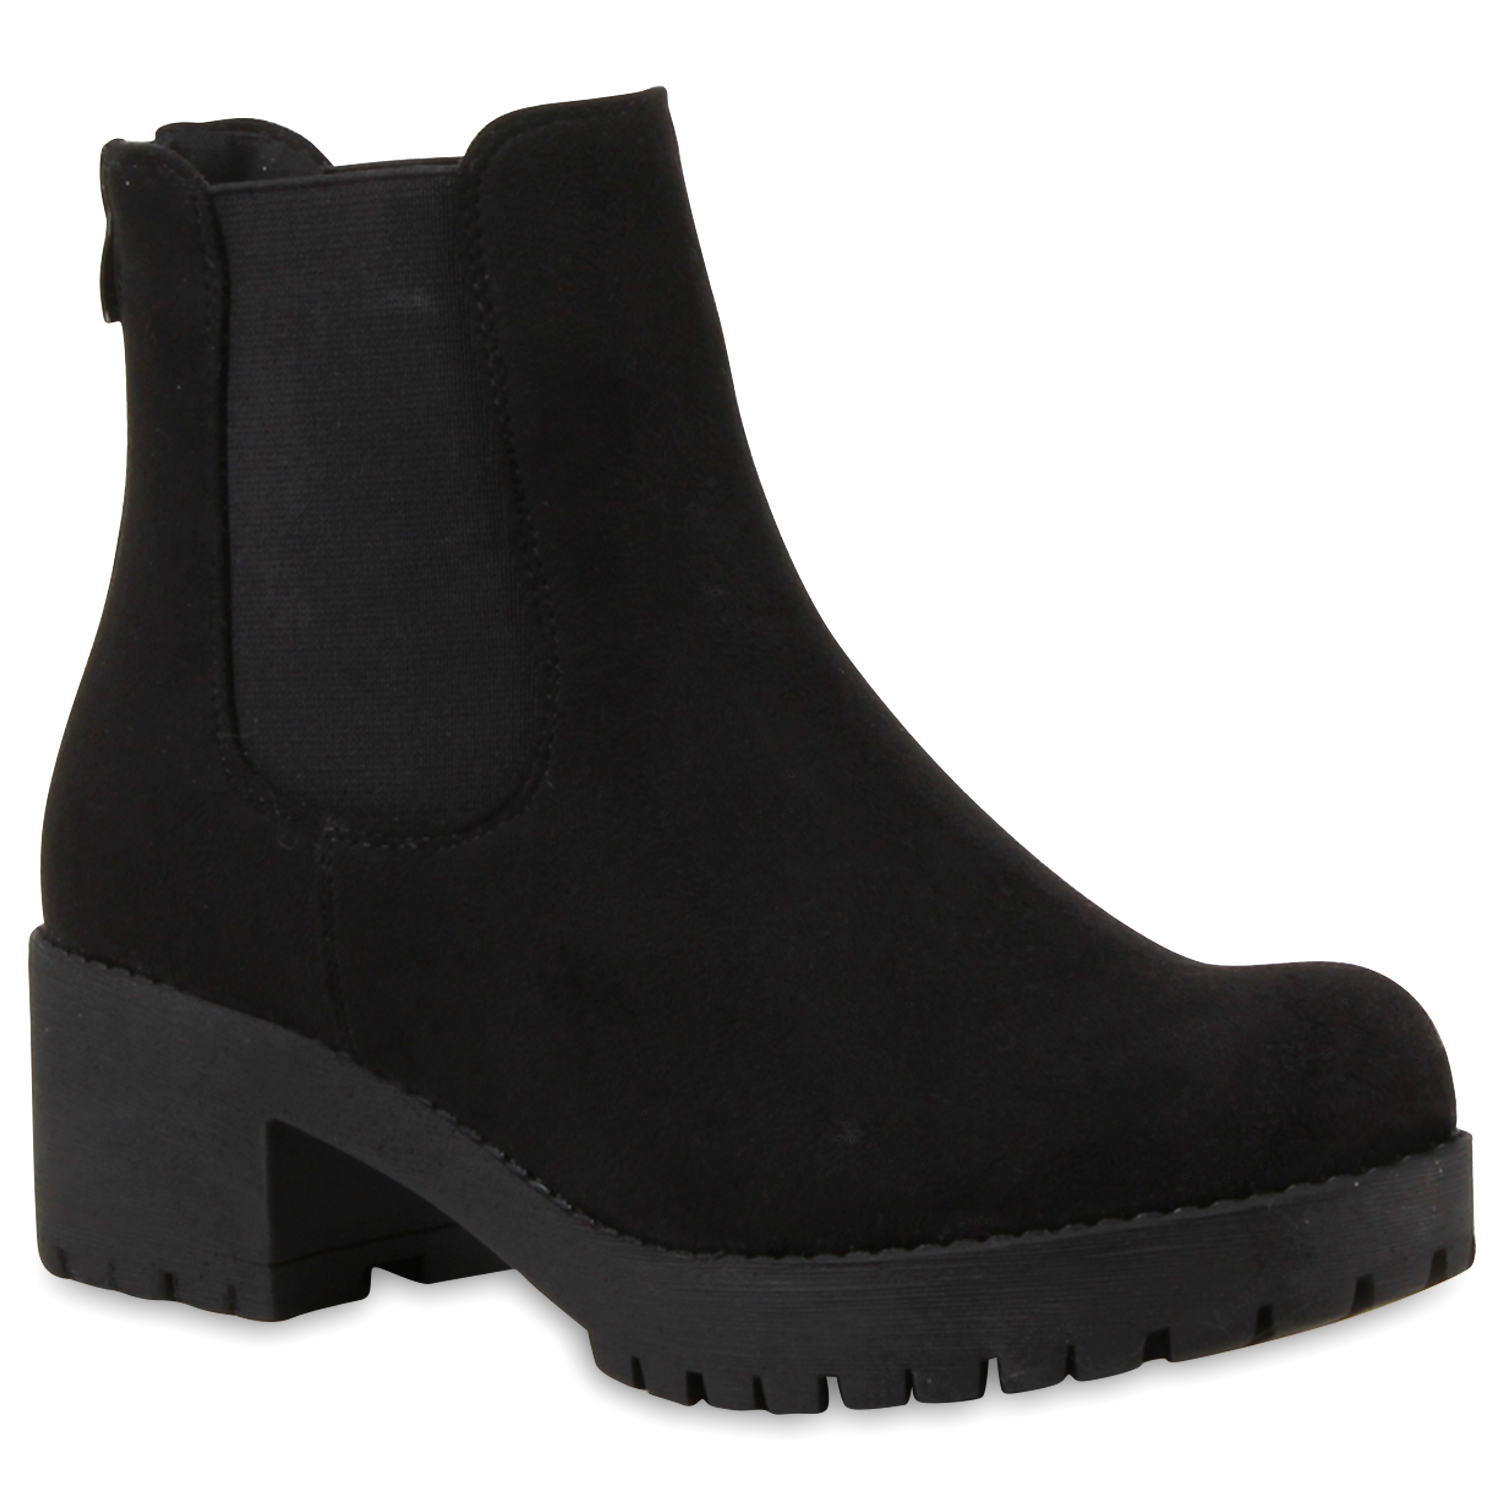 damen chelsea boots blockabsatz plateau stiefeletten lederoptik 79970 schuhe ebay. Black Bedroom Furniture Sets. Home Design Ideas